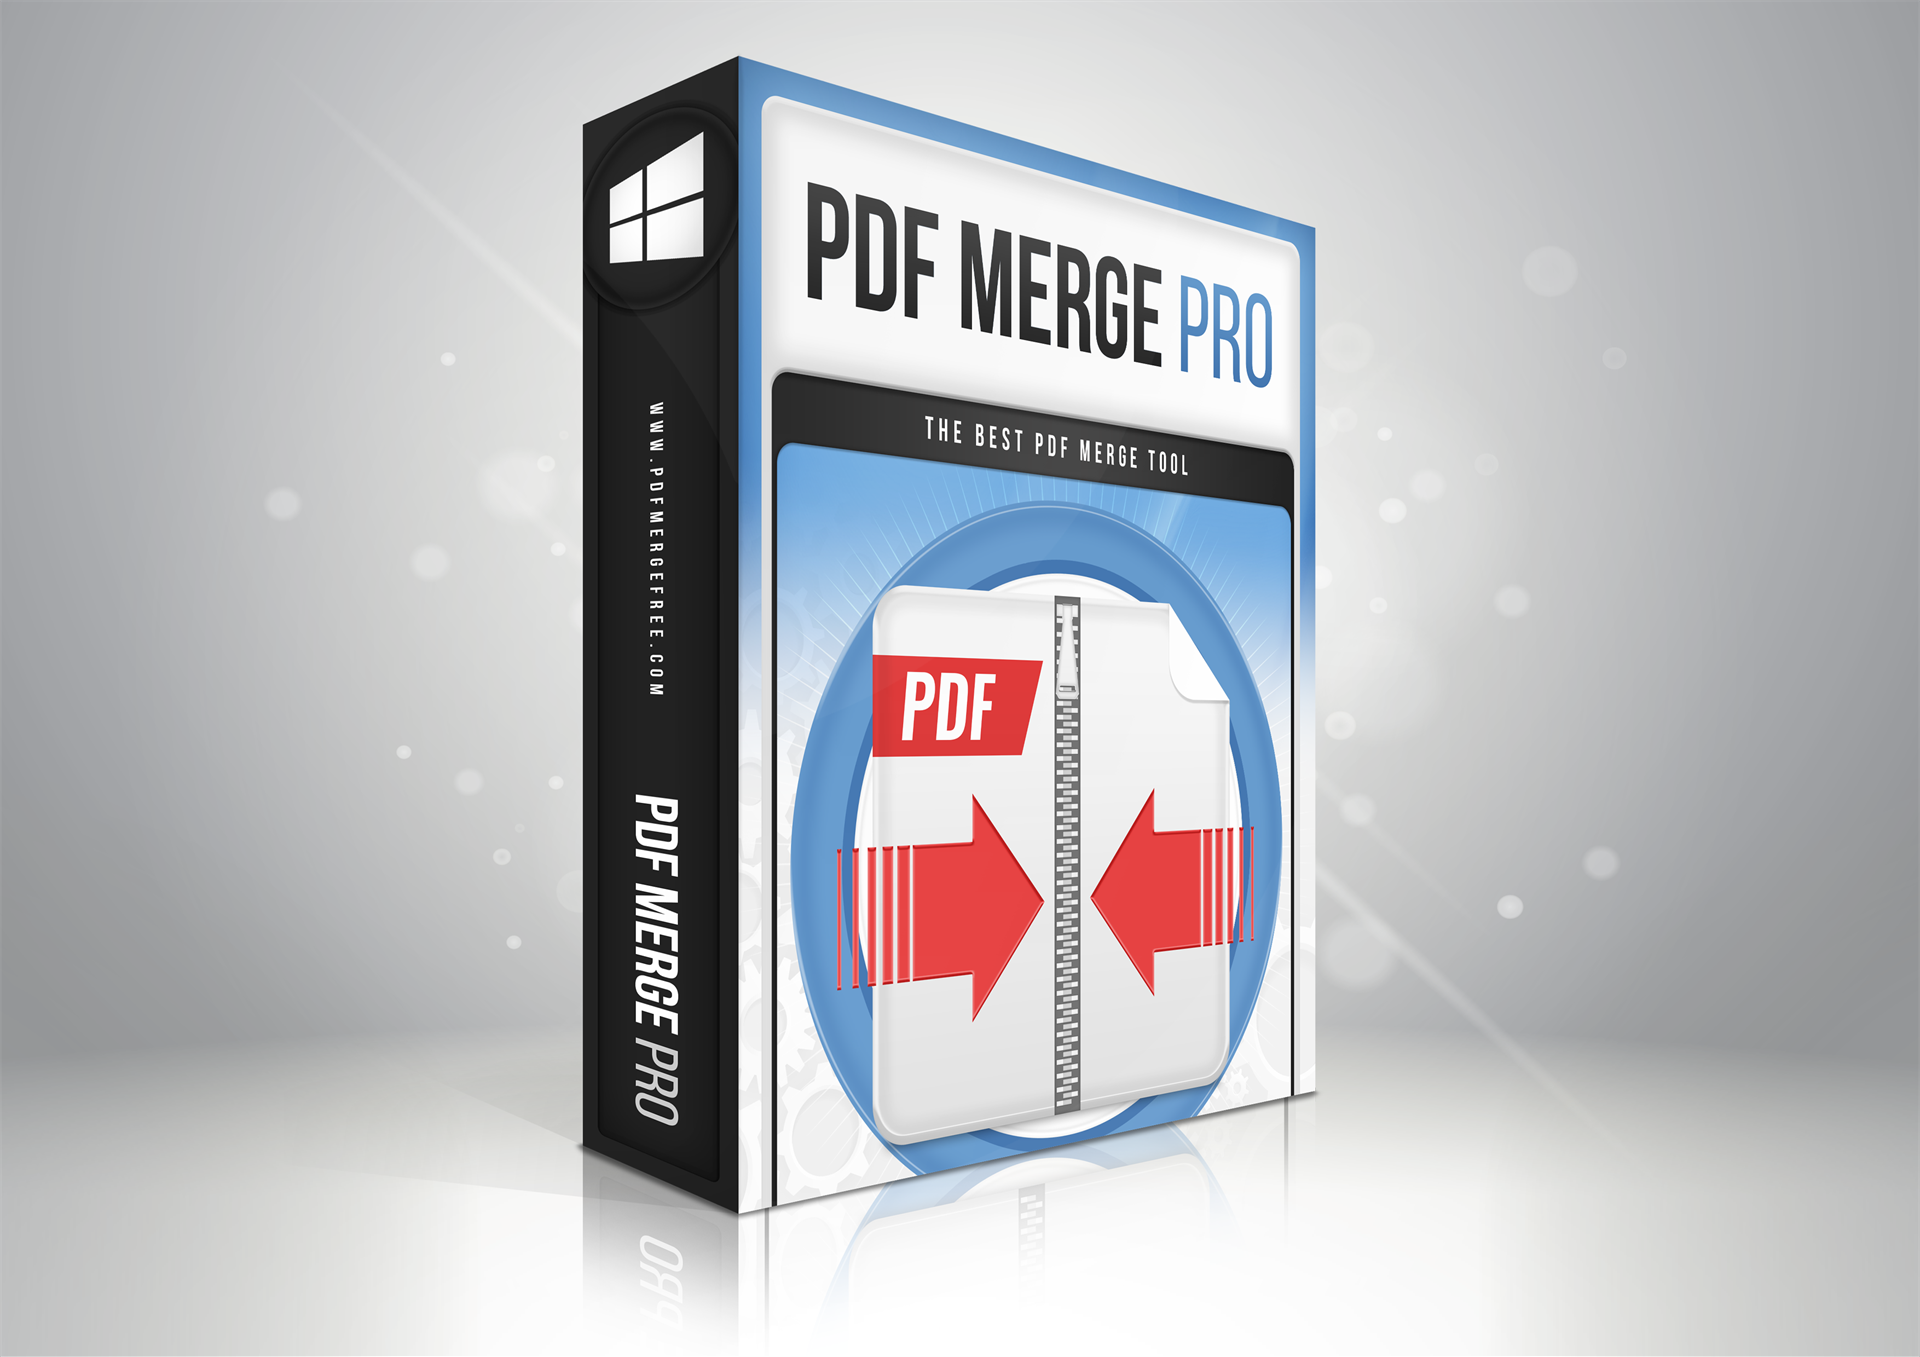 Wonderfulshare PDF Merge Pro Screenshot